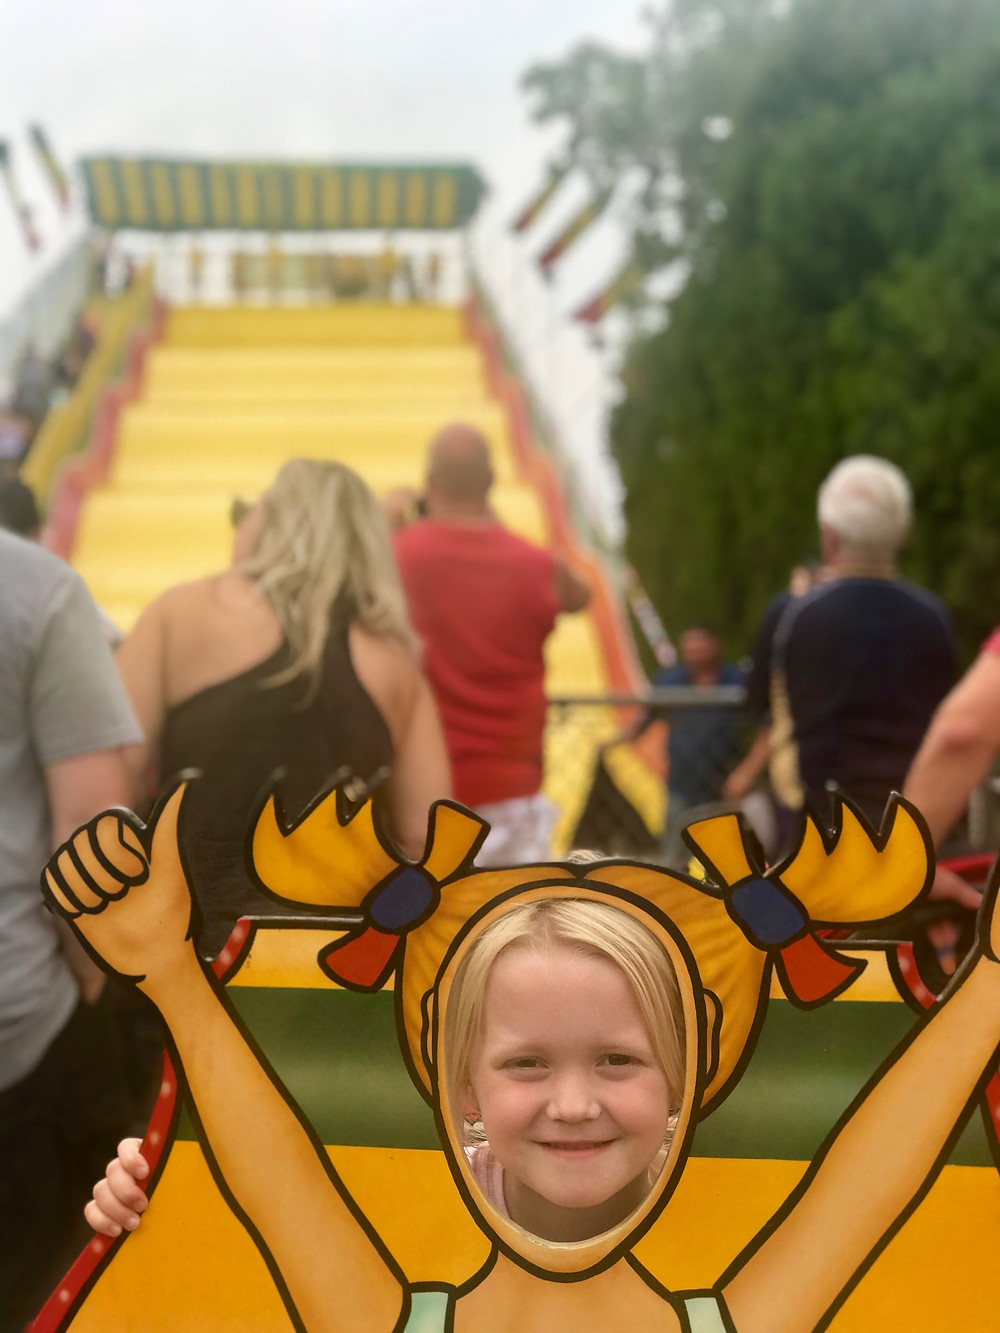 The big yellow slide at Wisconsin State Fair is the stuff childhood dreams are made of.